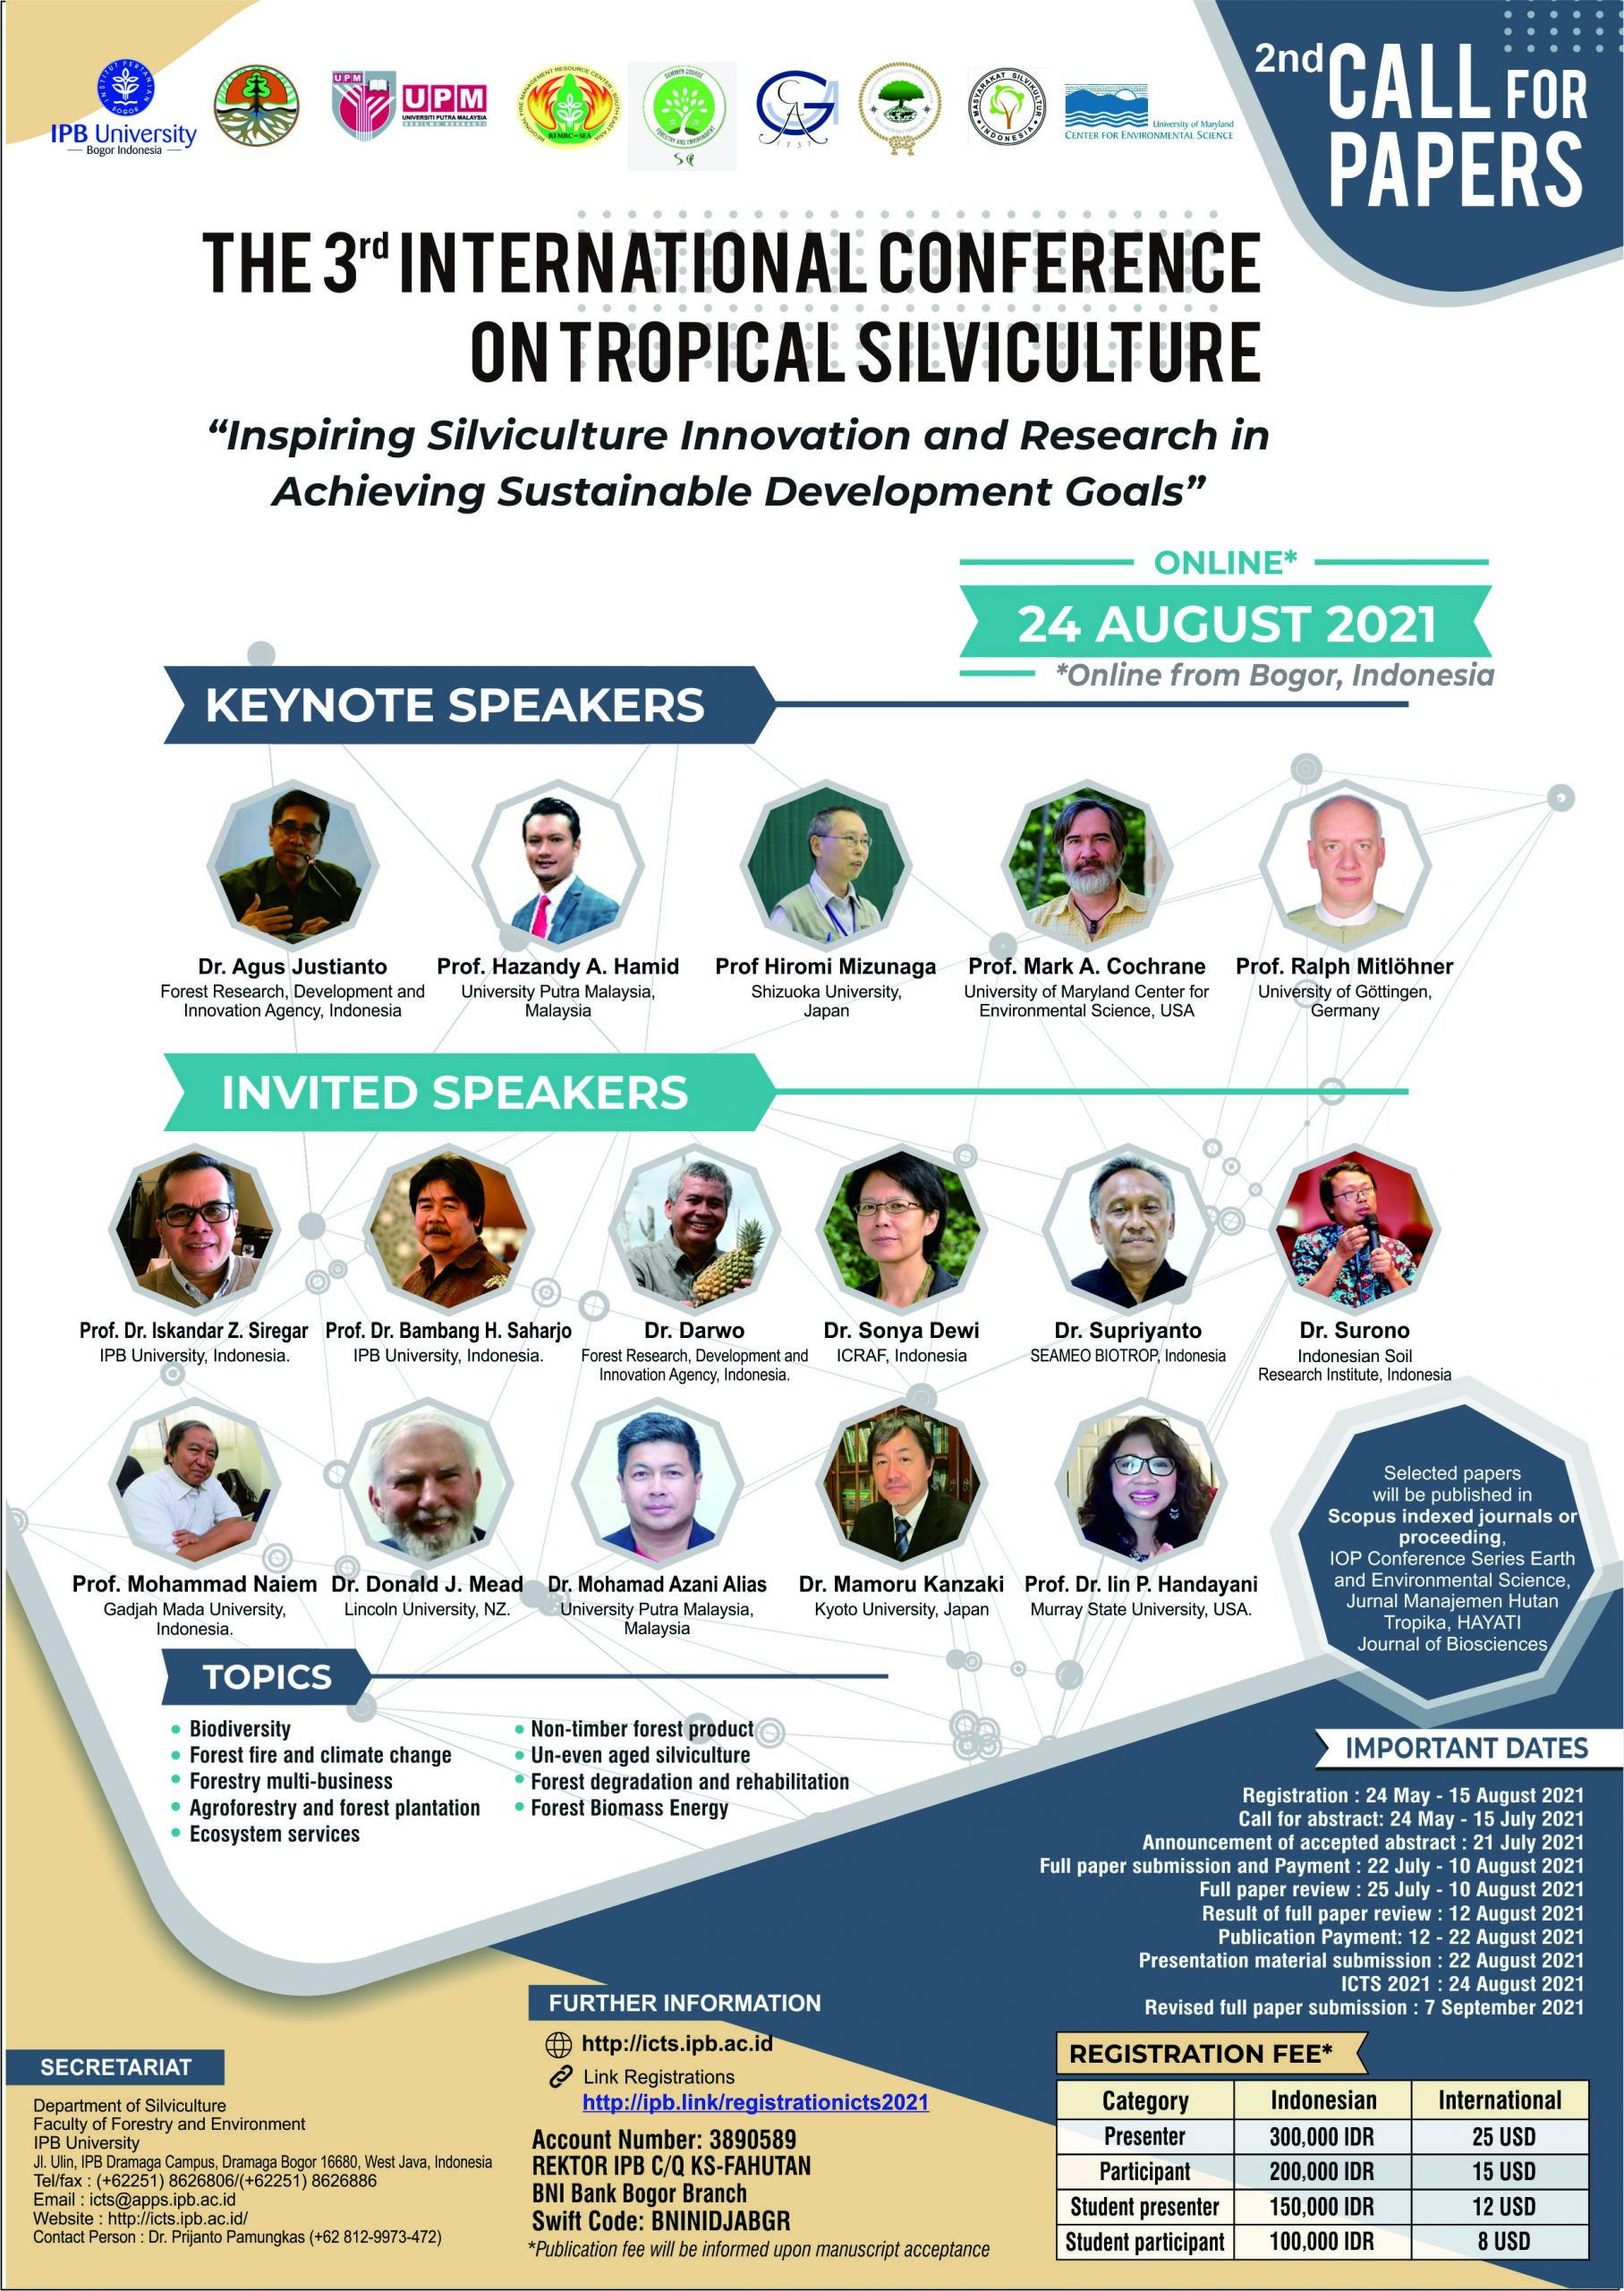 The 3rd International Conferenceon Tropical Silviculture (ICTS 2021)